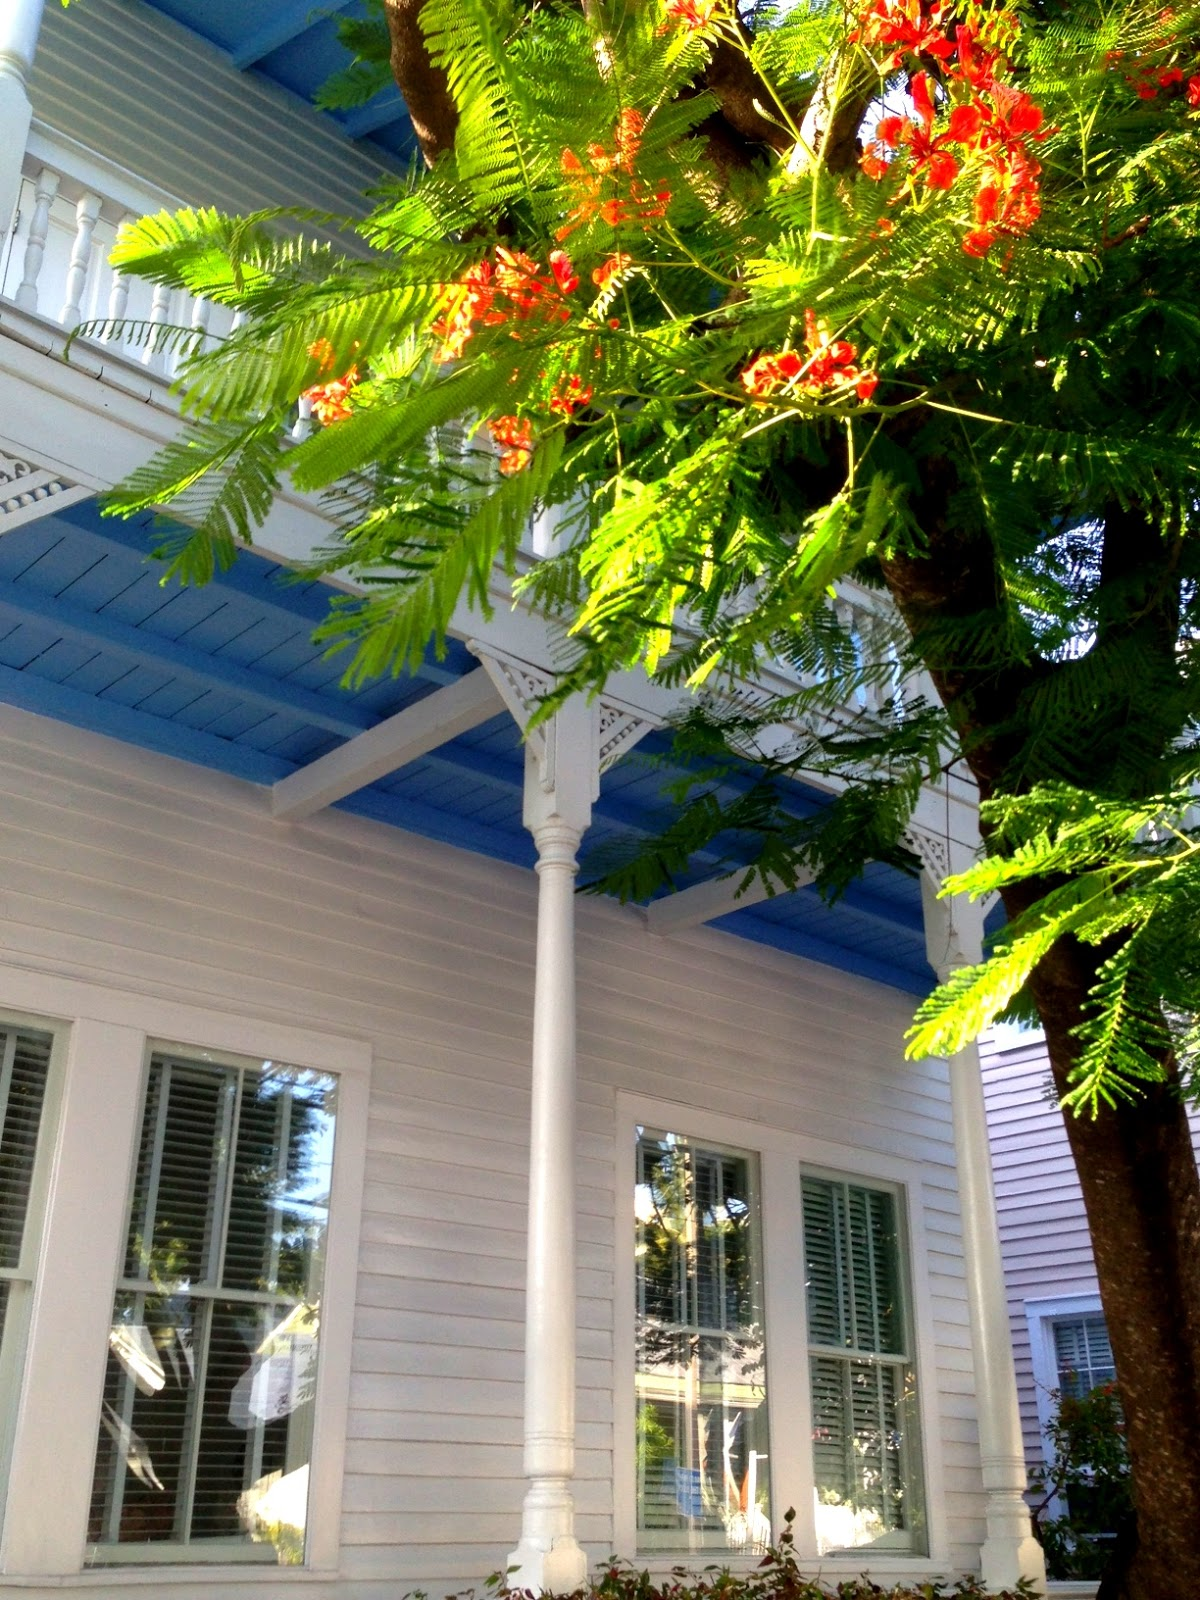 Both Upper And Lower Porch Ceilings Are Painted Blue In This Old Town Key  West Home, Providing Dramatic Contrast (and Maybe Even Protection From  Ghosts!)